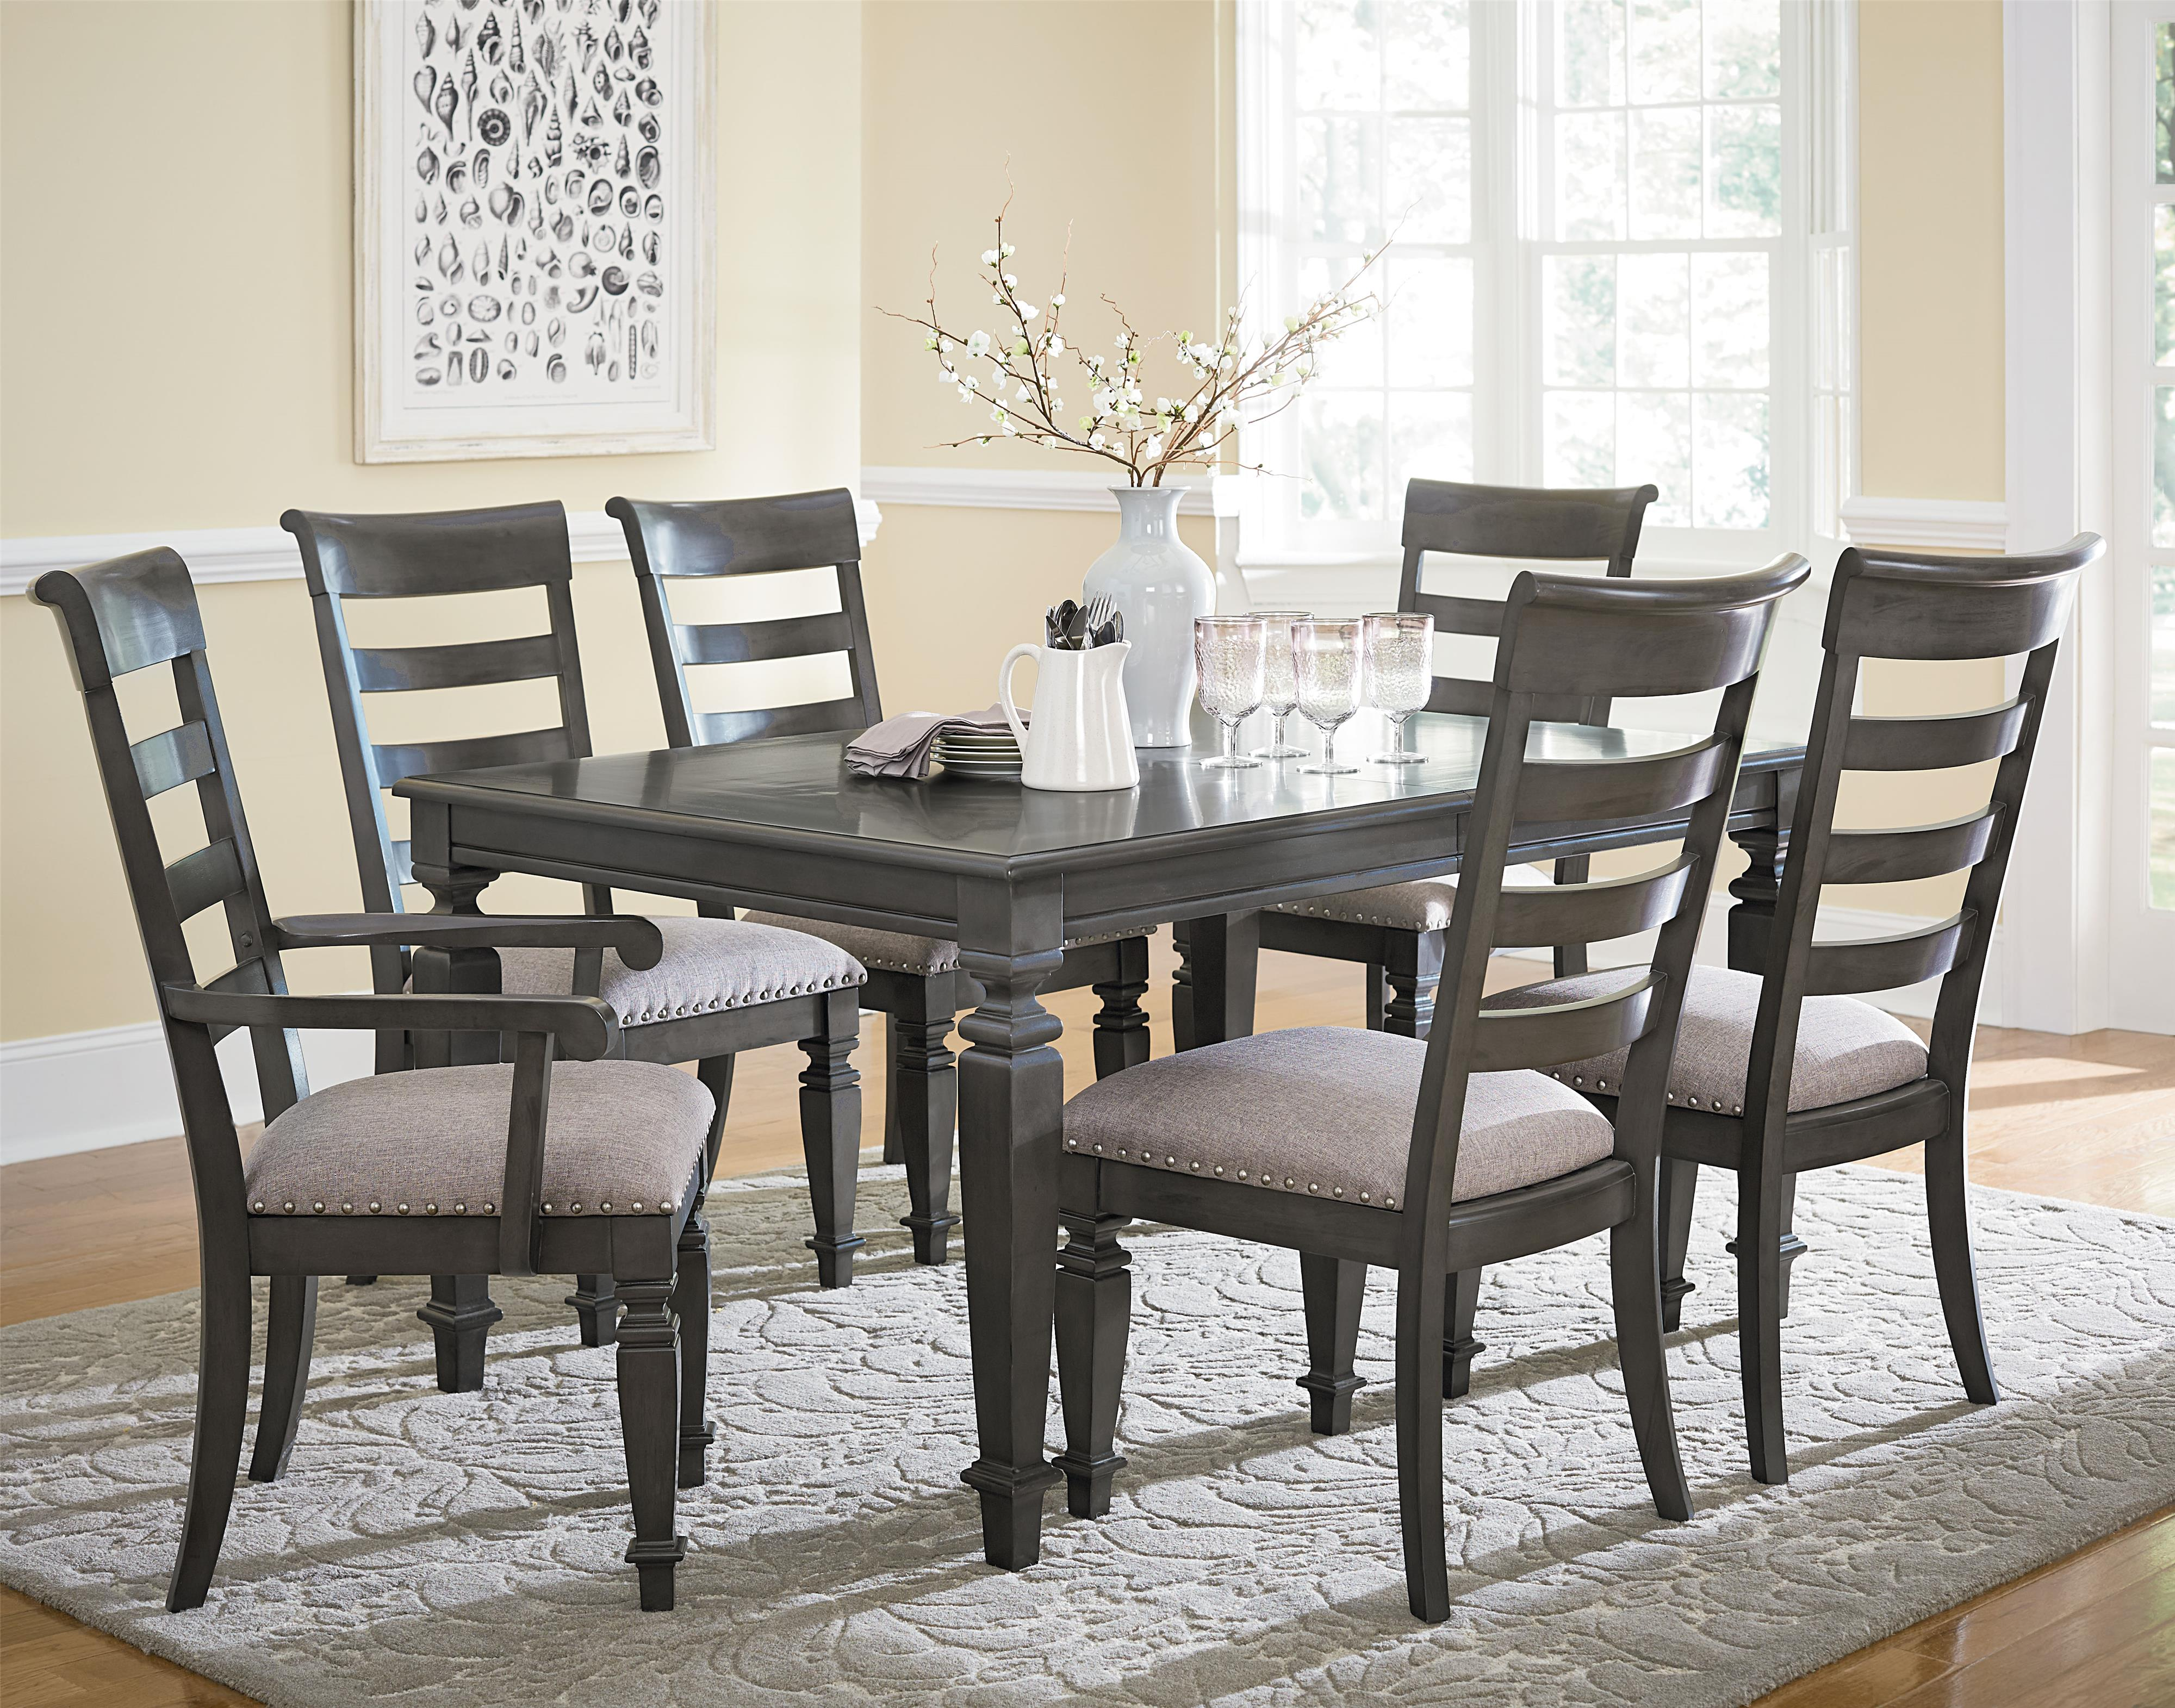 full dining design furnitures classic table size kitchen sets home of round with